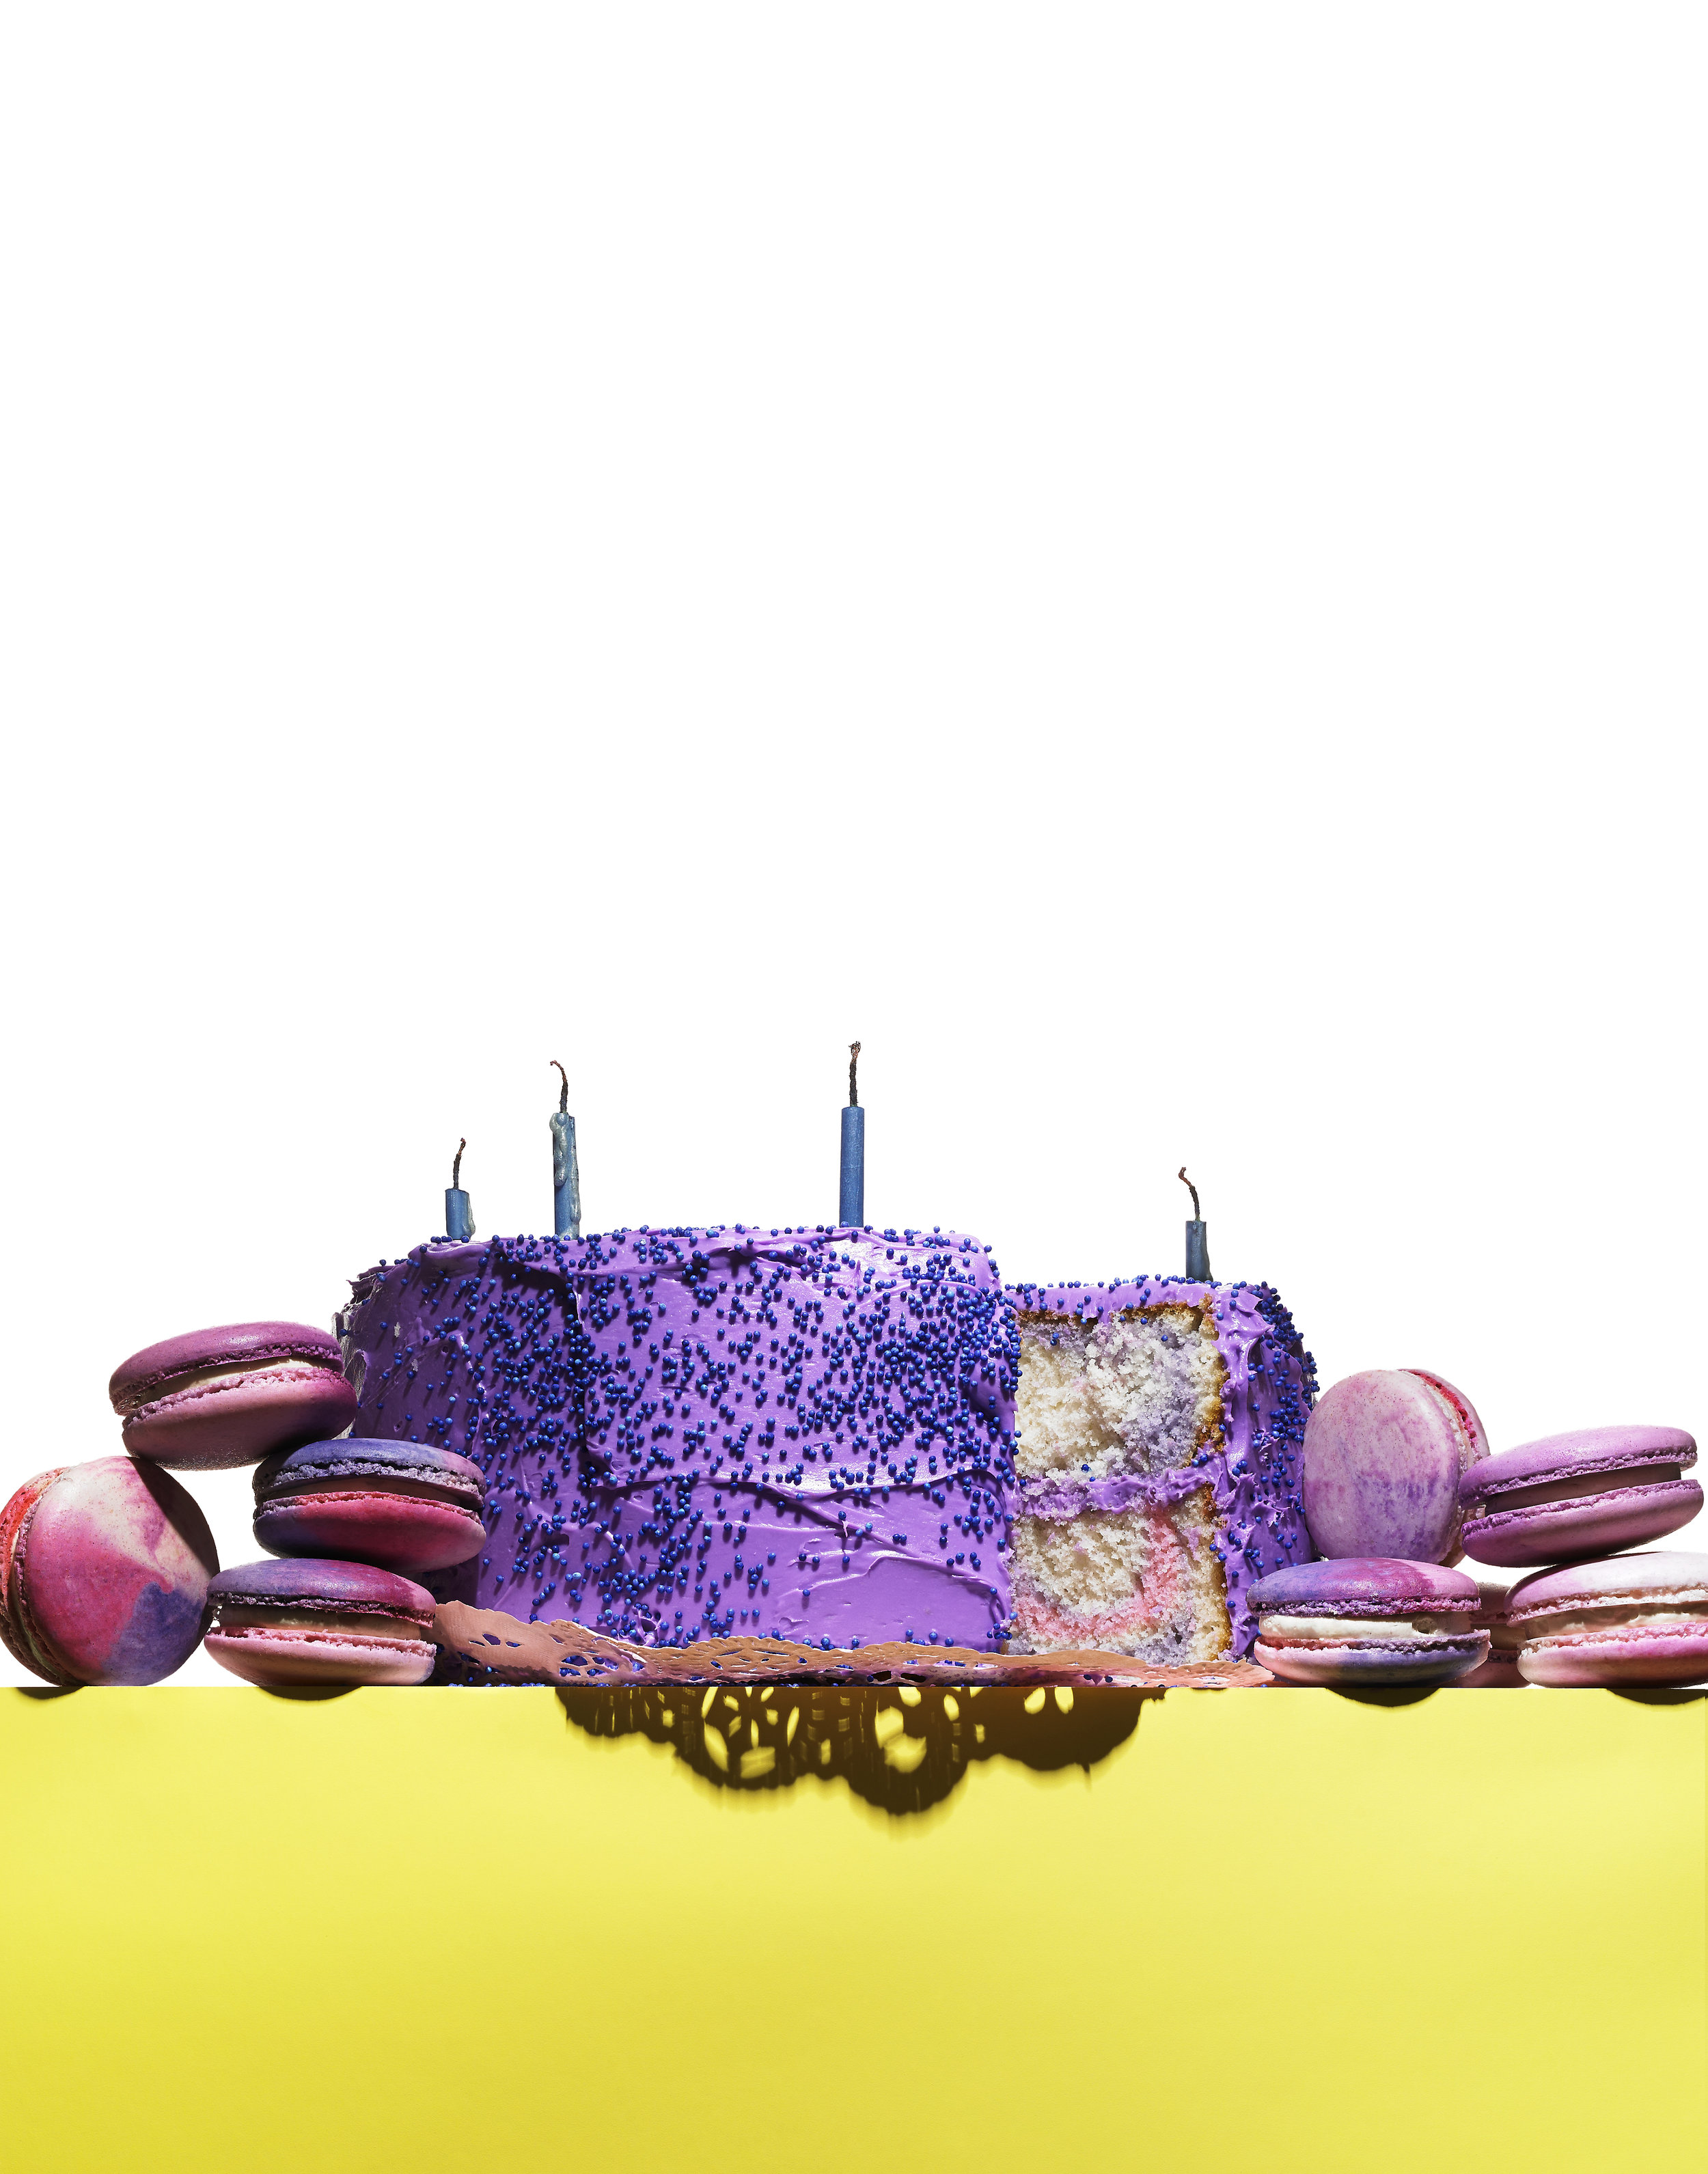 072113_BirthdayCake.jpg